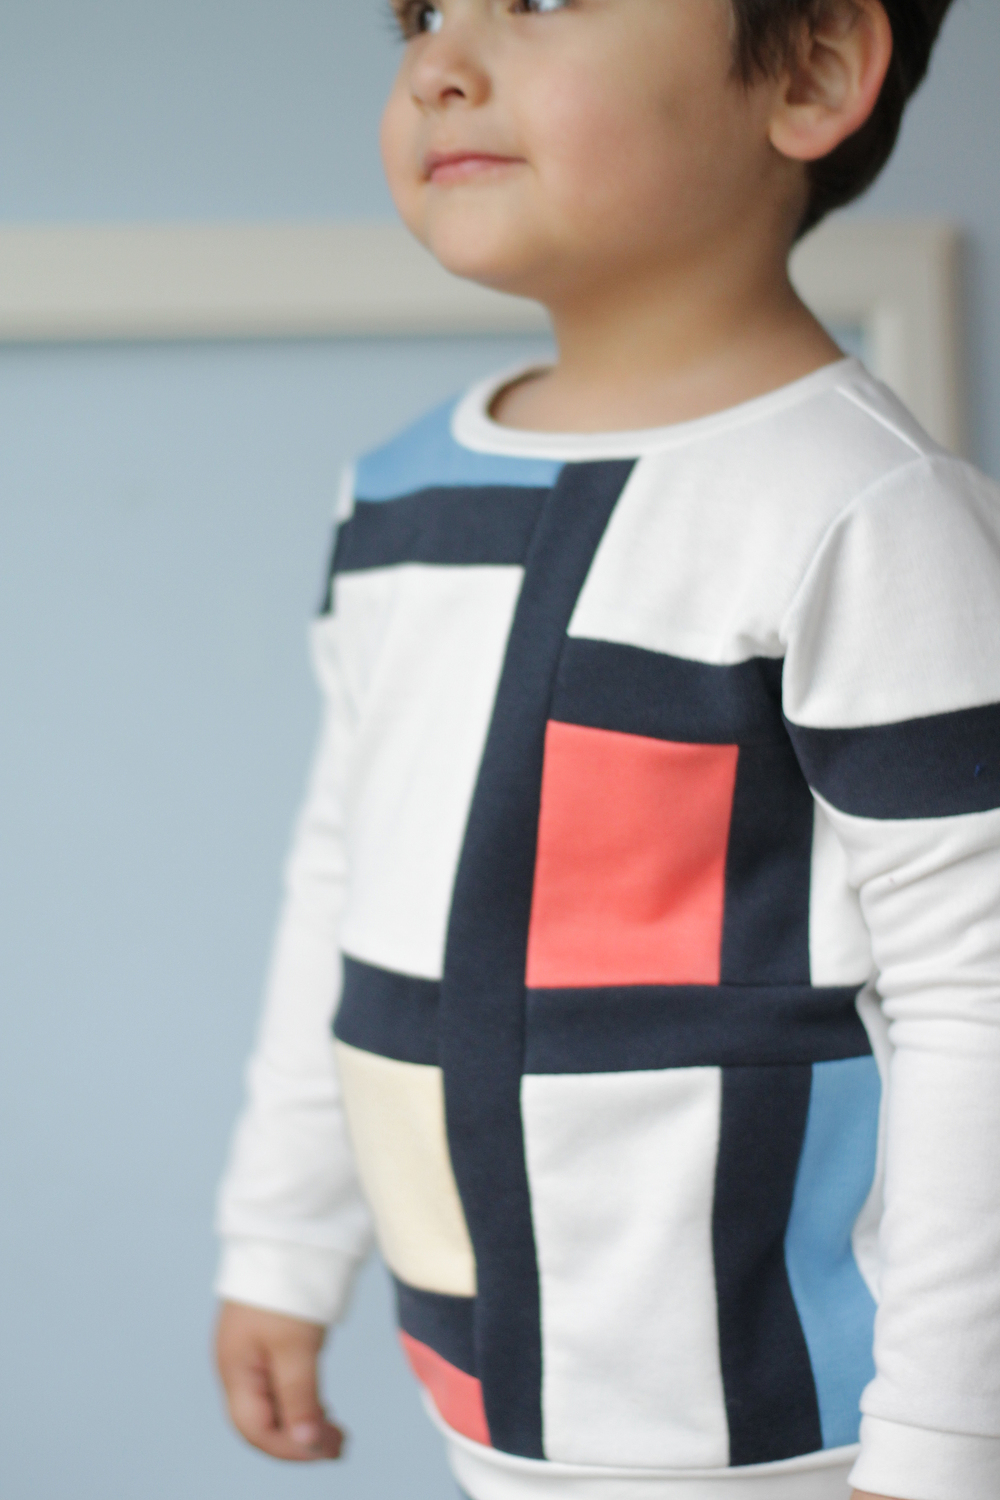 mondrian_sweater11.jpg